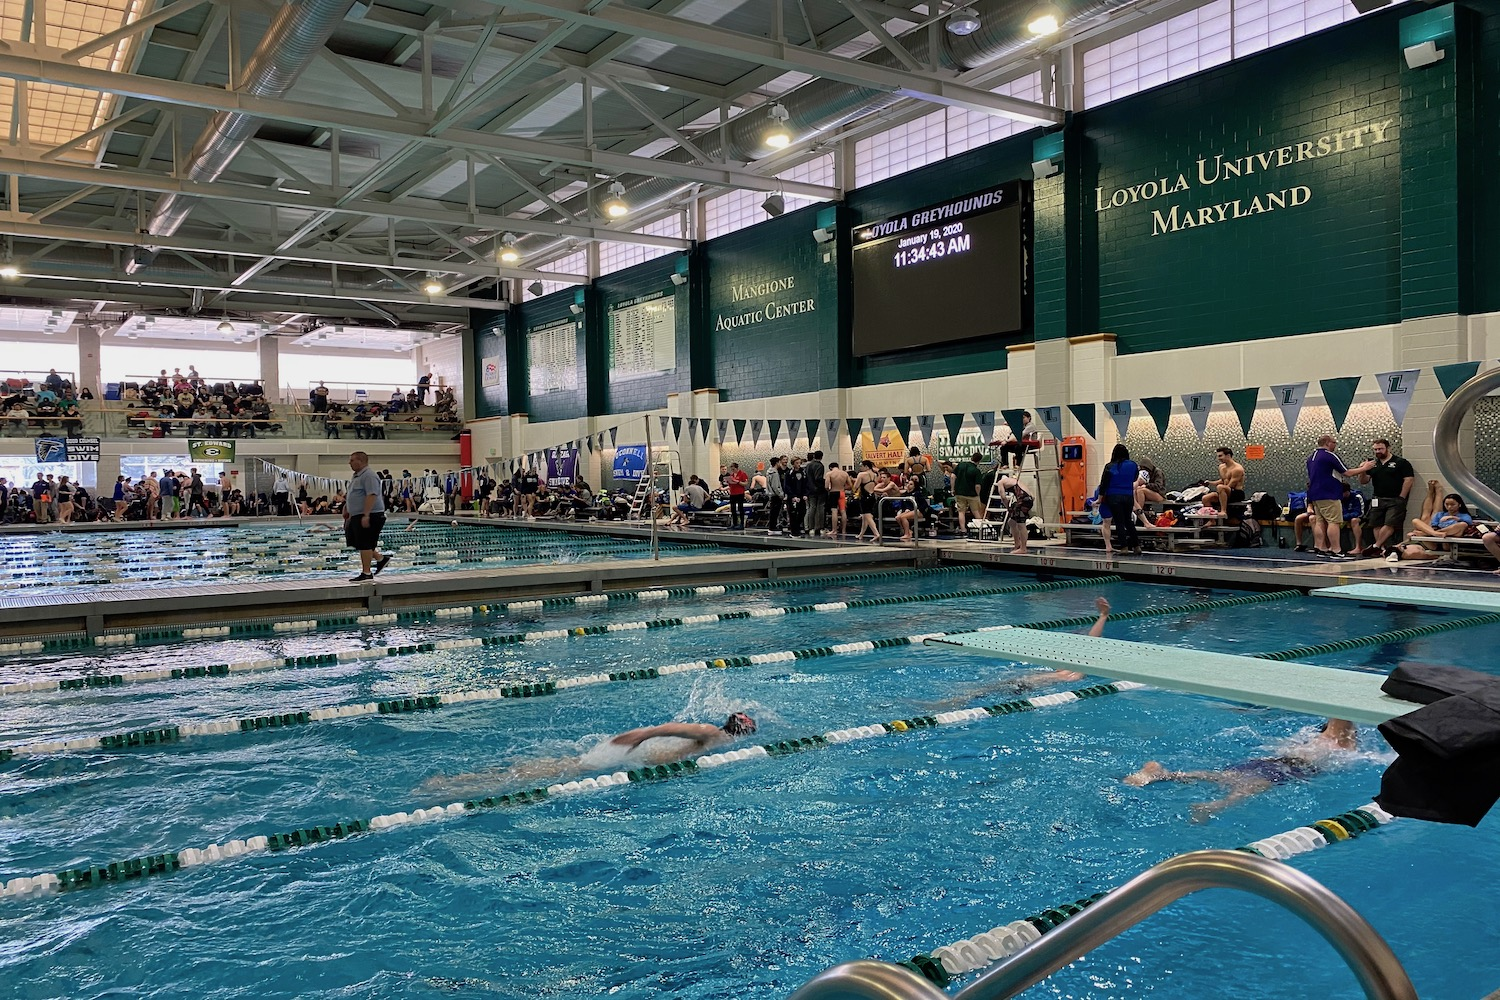 Swimmers race during the National Catholic  Swimming Championship meet at the Mangione Aquatic Center.